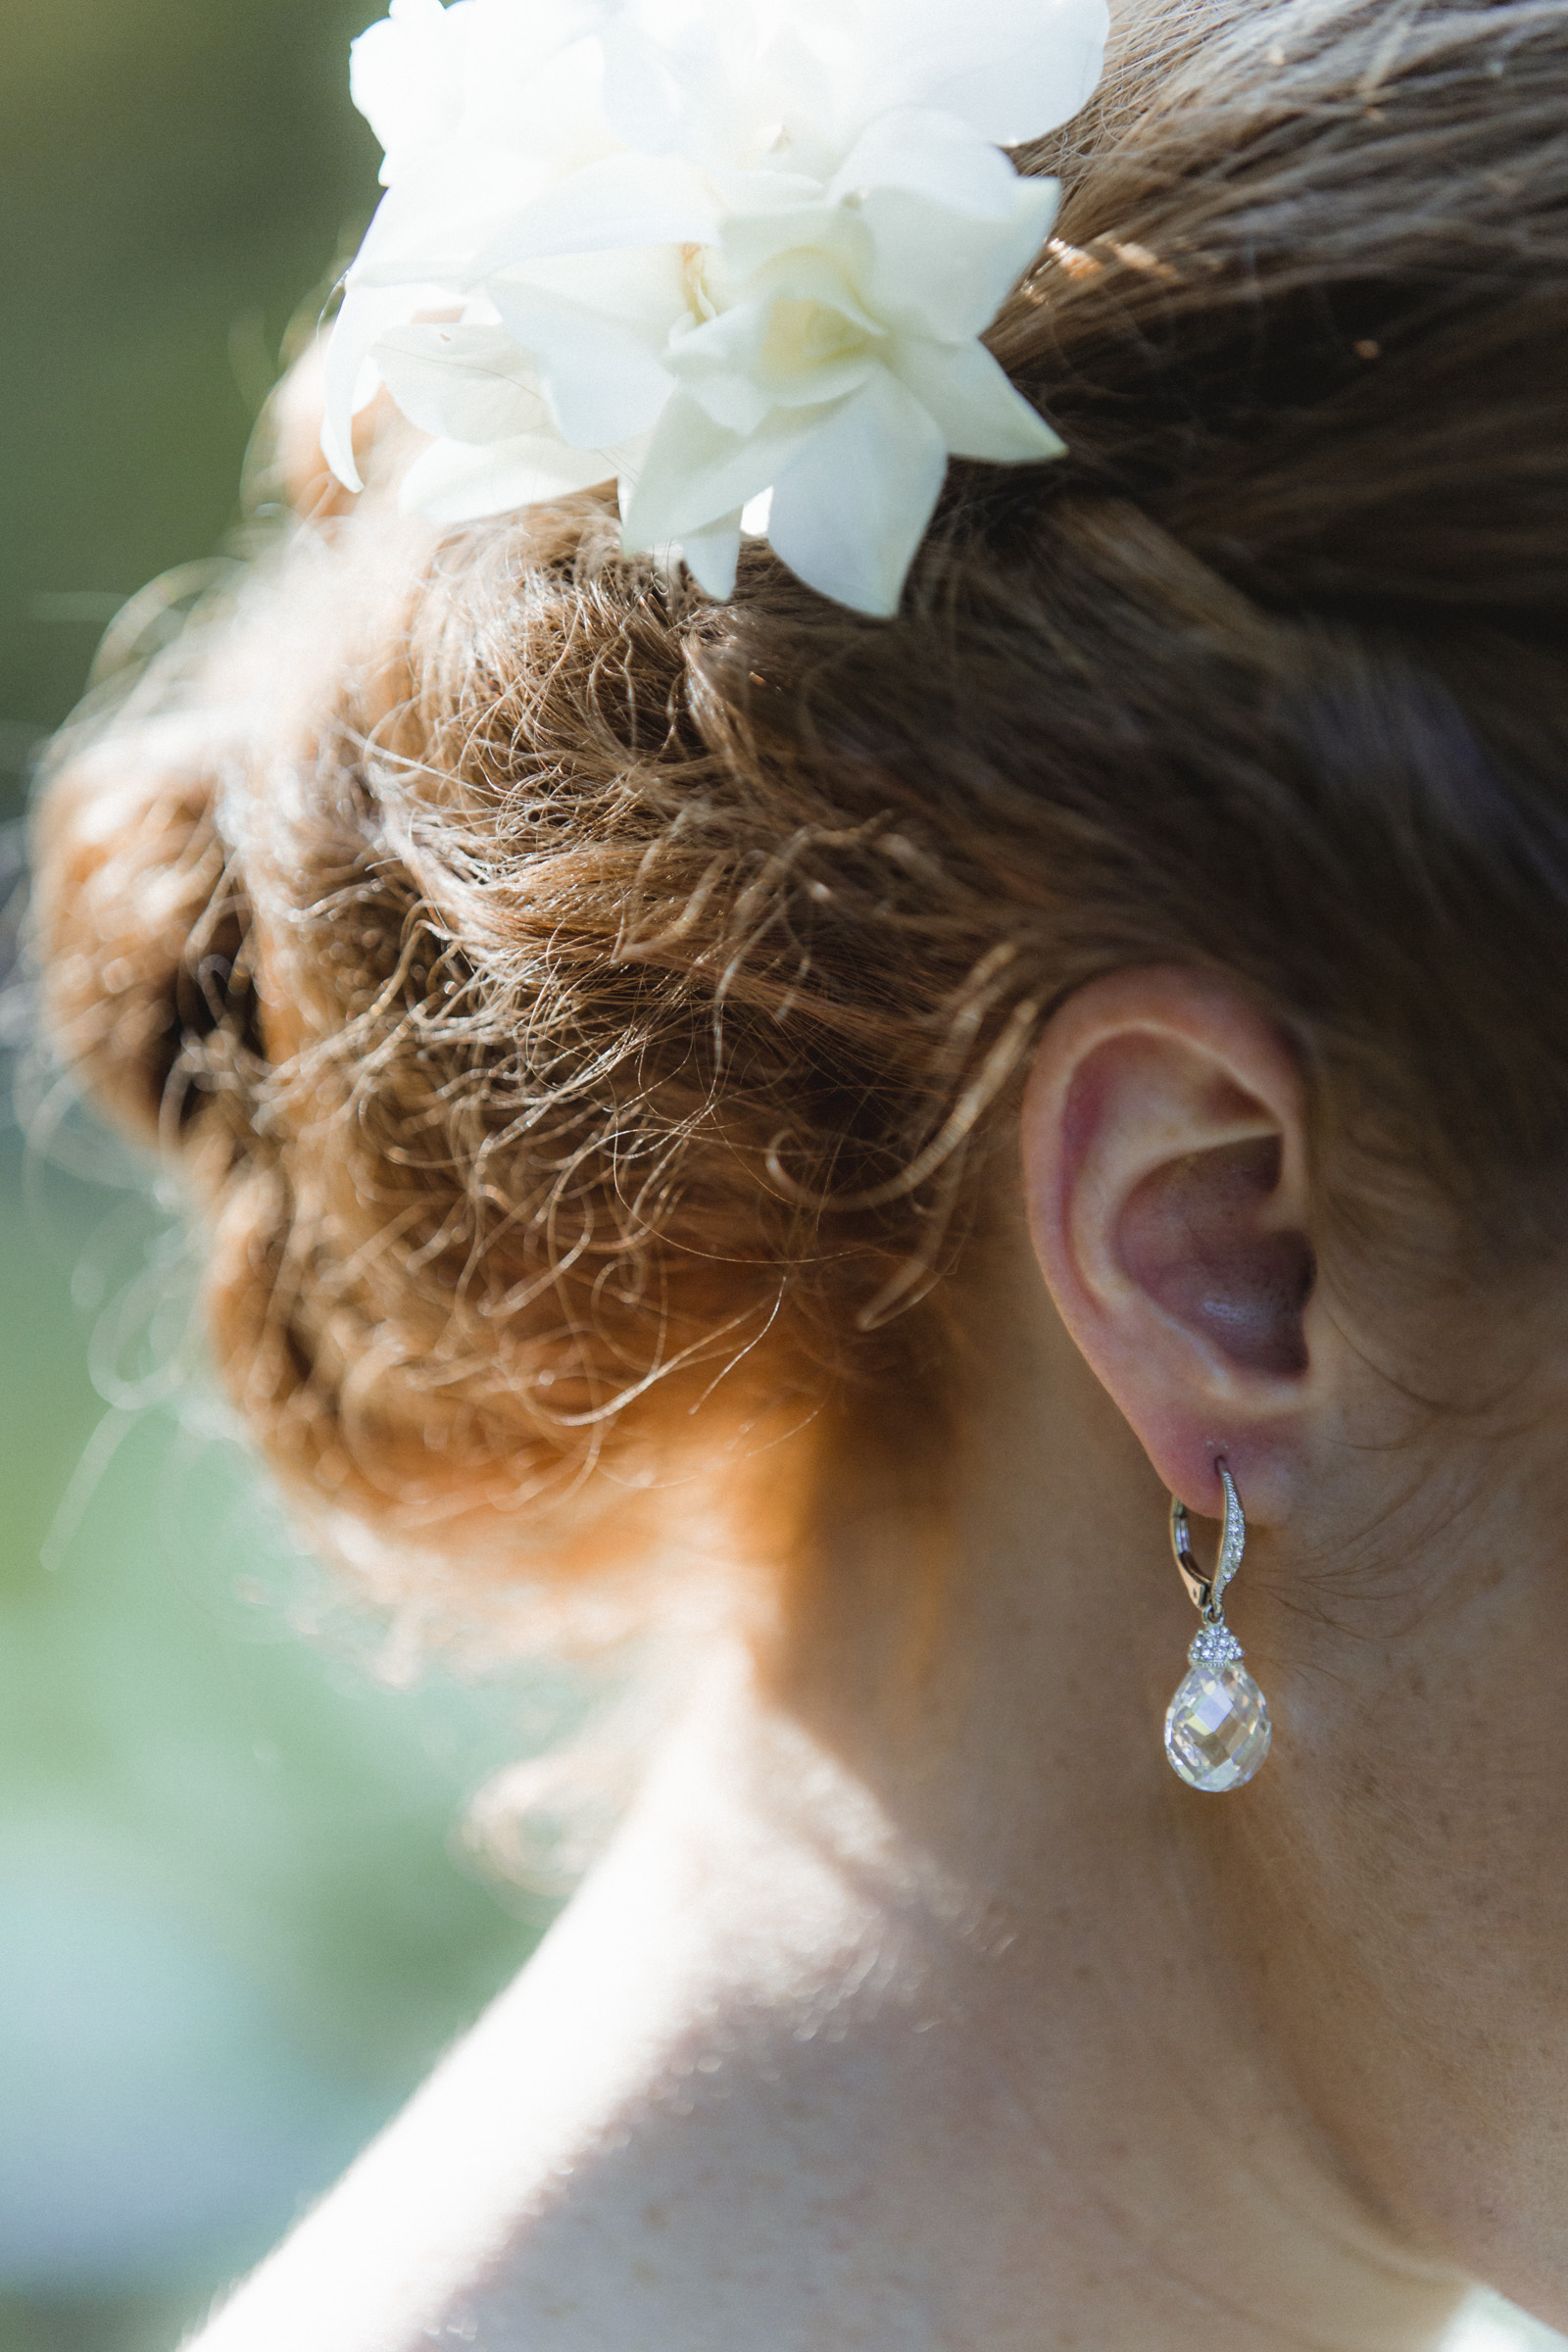 close up of brides hair and earring - Estate at Florentine Gardens wedding - Hudson Valley Wedding - Kelsey & Anish's wedding - Amy Sims Photography